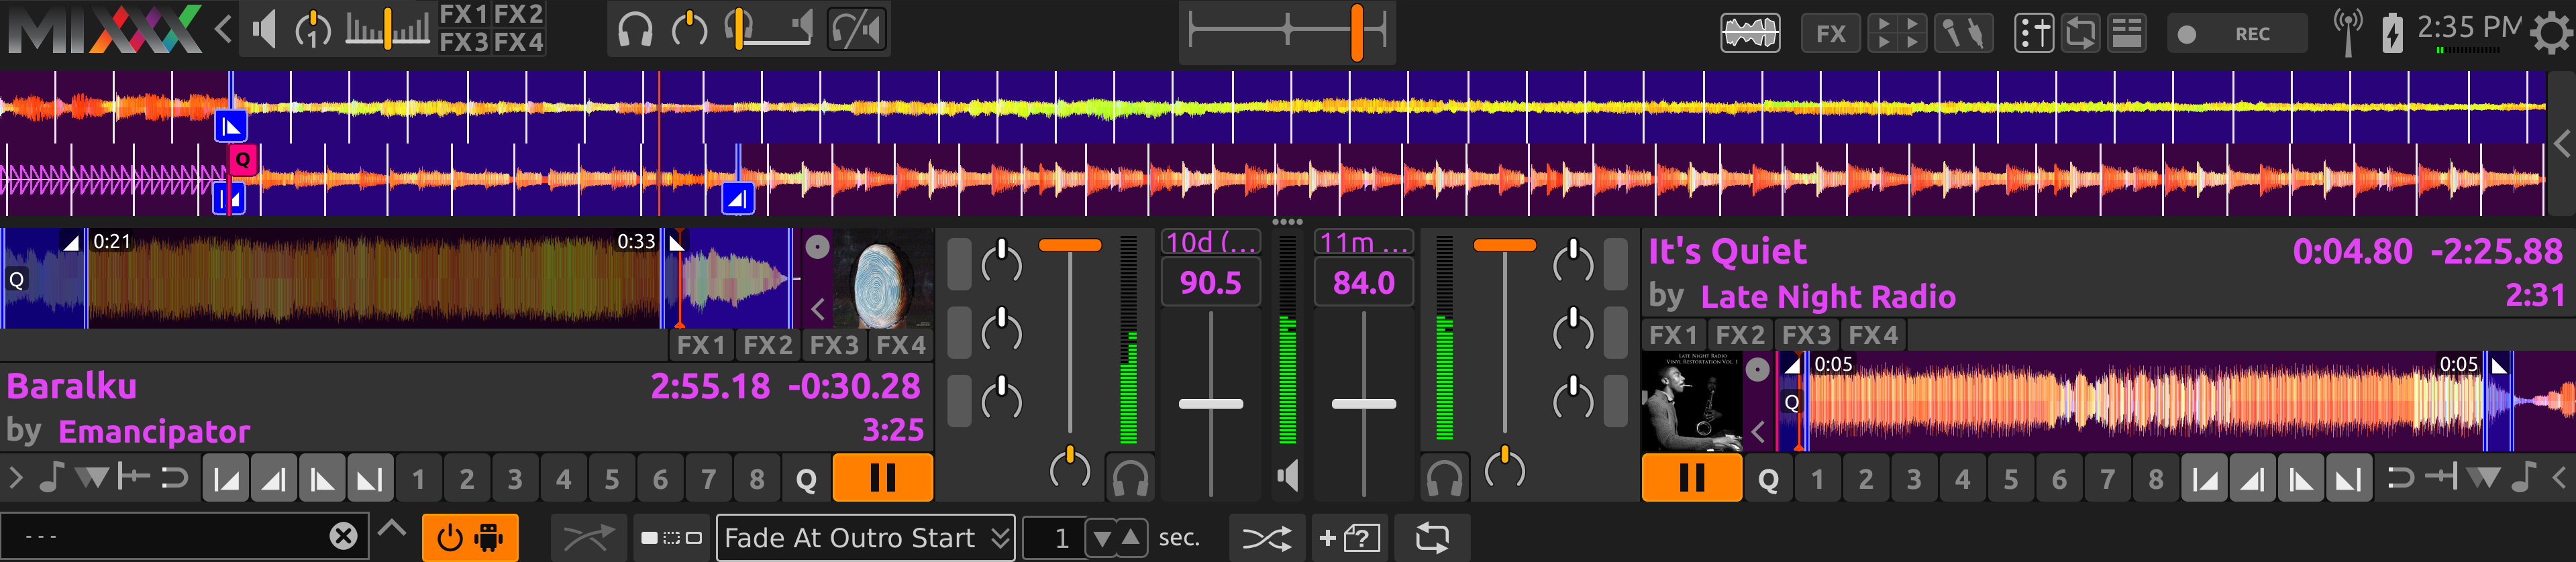 AutoDJ aligning the start of the intro and outro in Fade At Outro Start mode